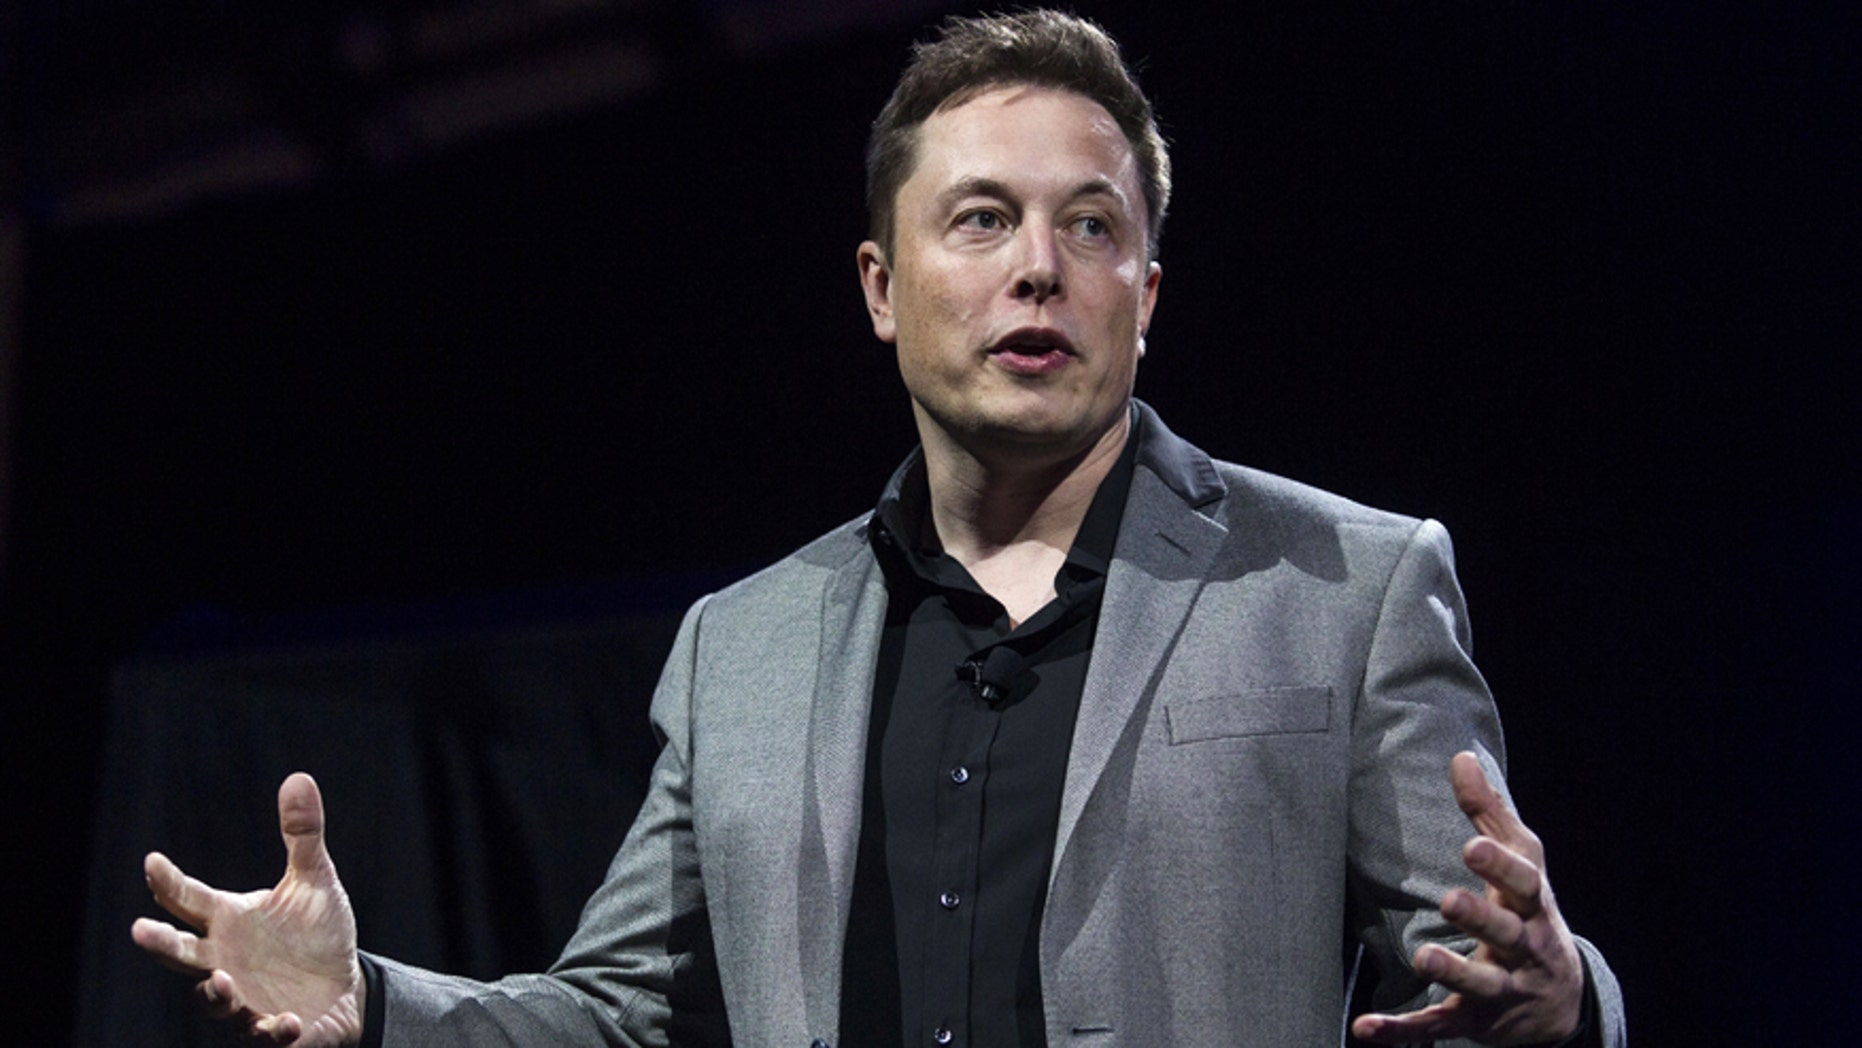 Tesla CEO Elon Musk speaks onstage in April 2015.